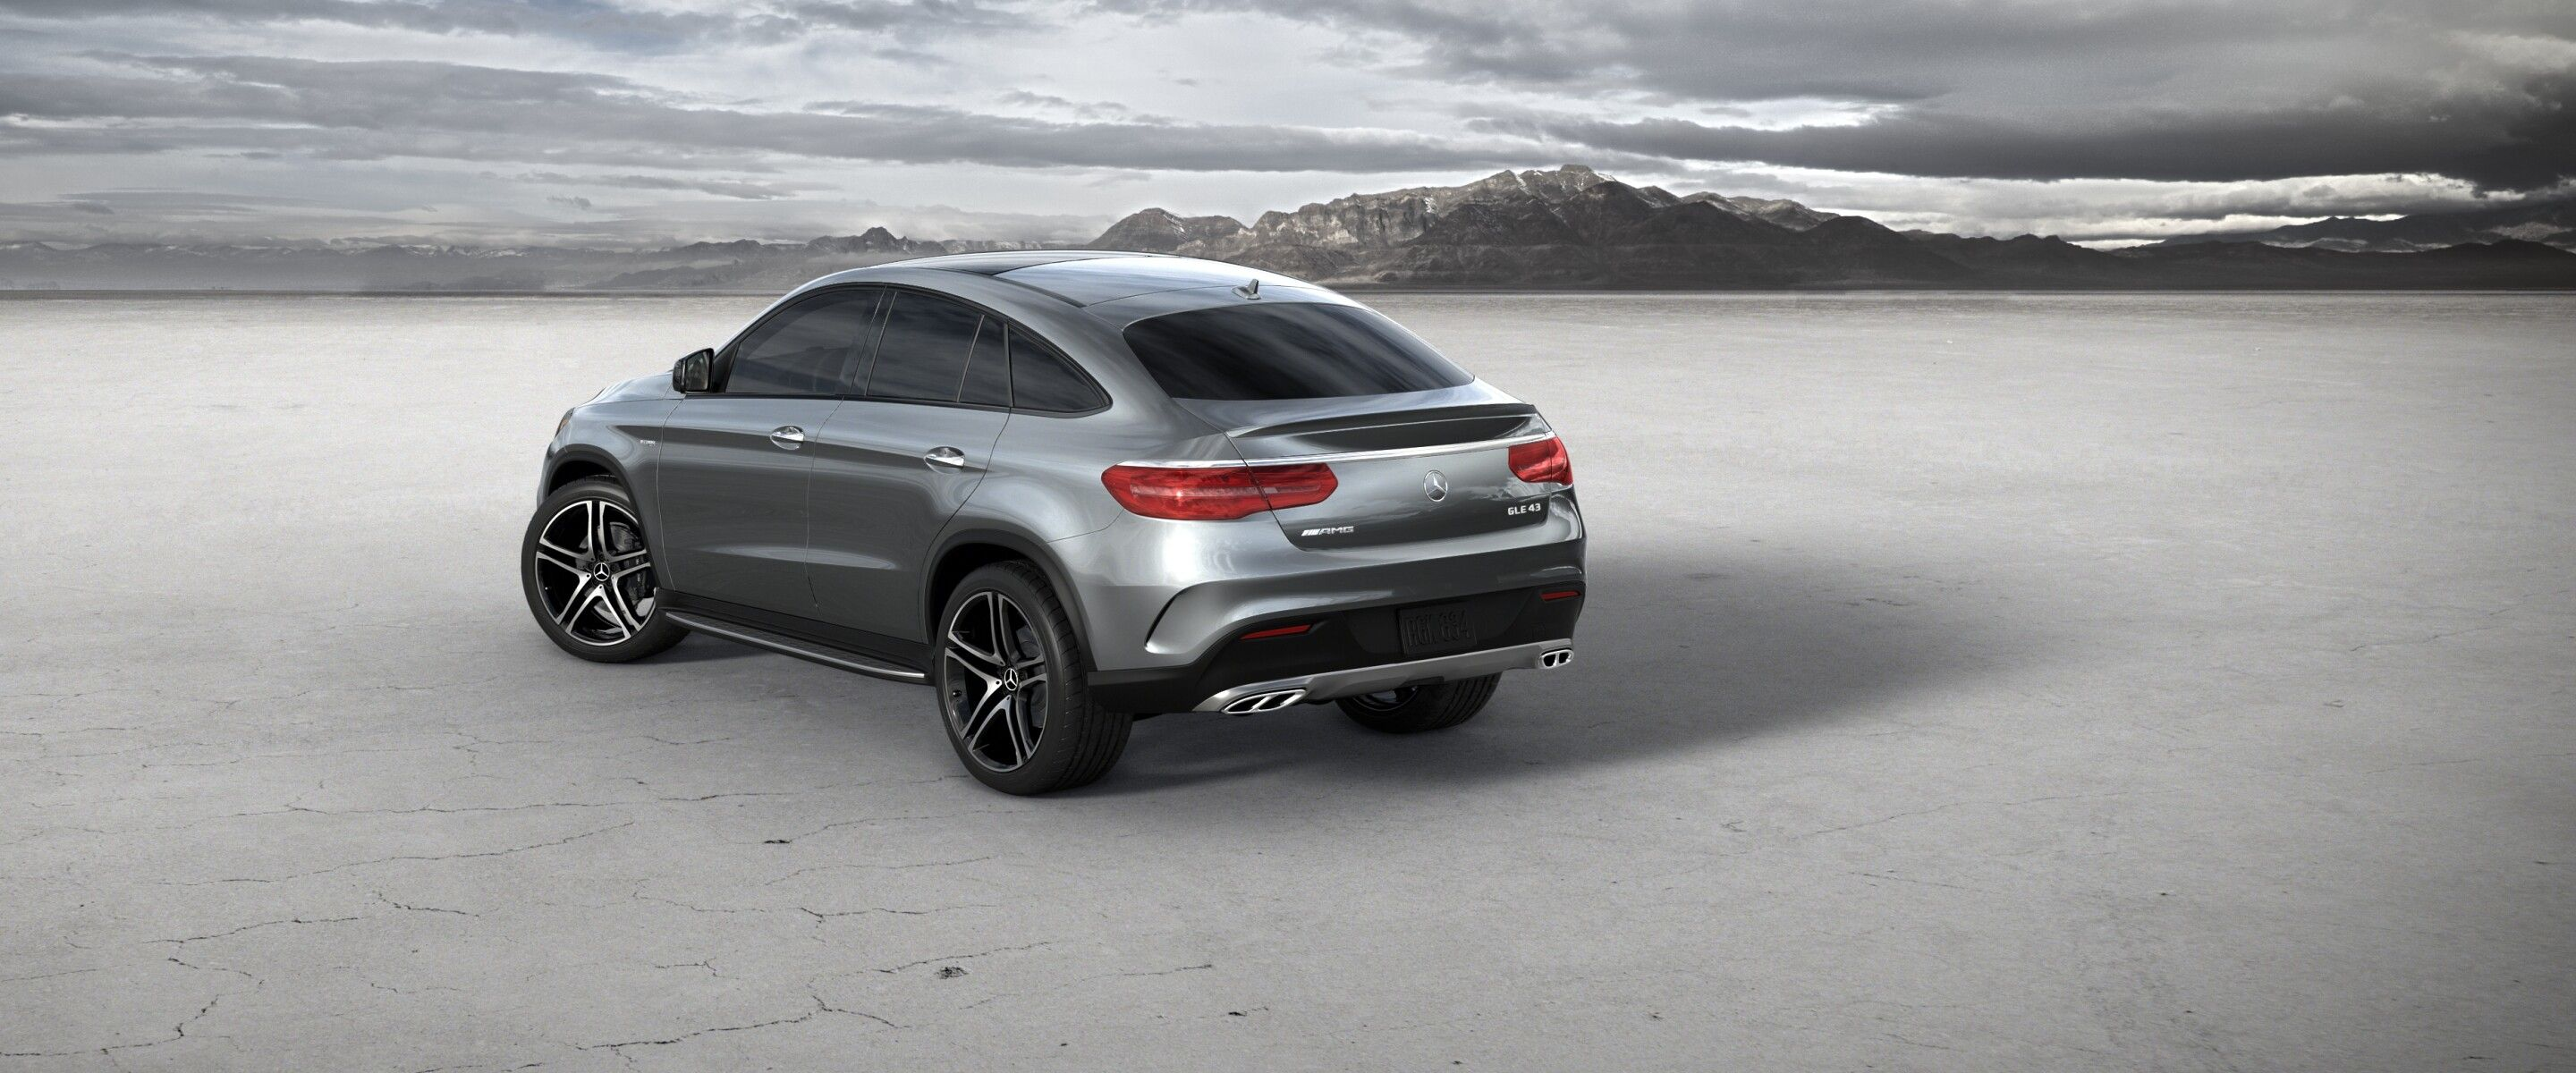 2017 Gle43 Amg Coupe Mercedes Benz Gle Mercedes Benz Price Coupe